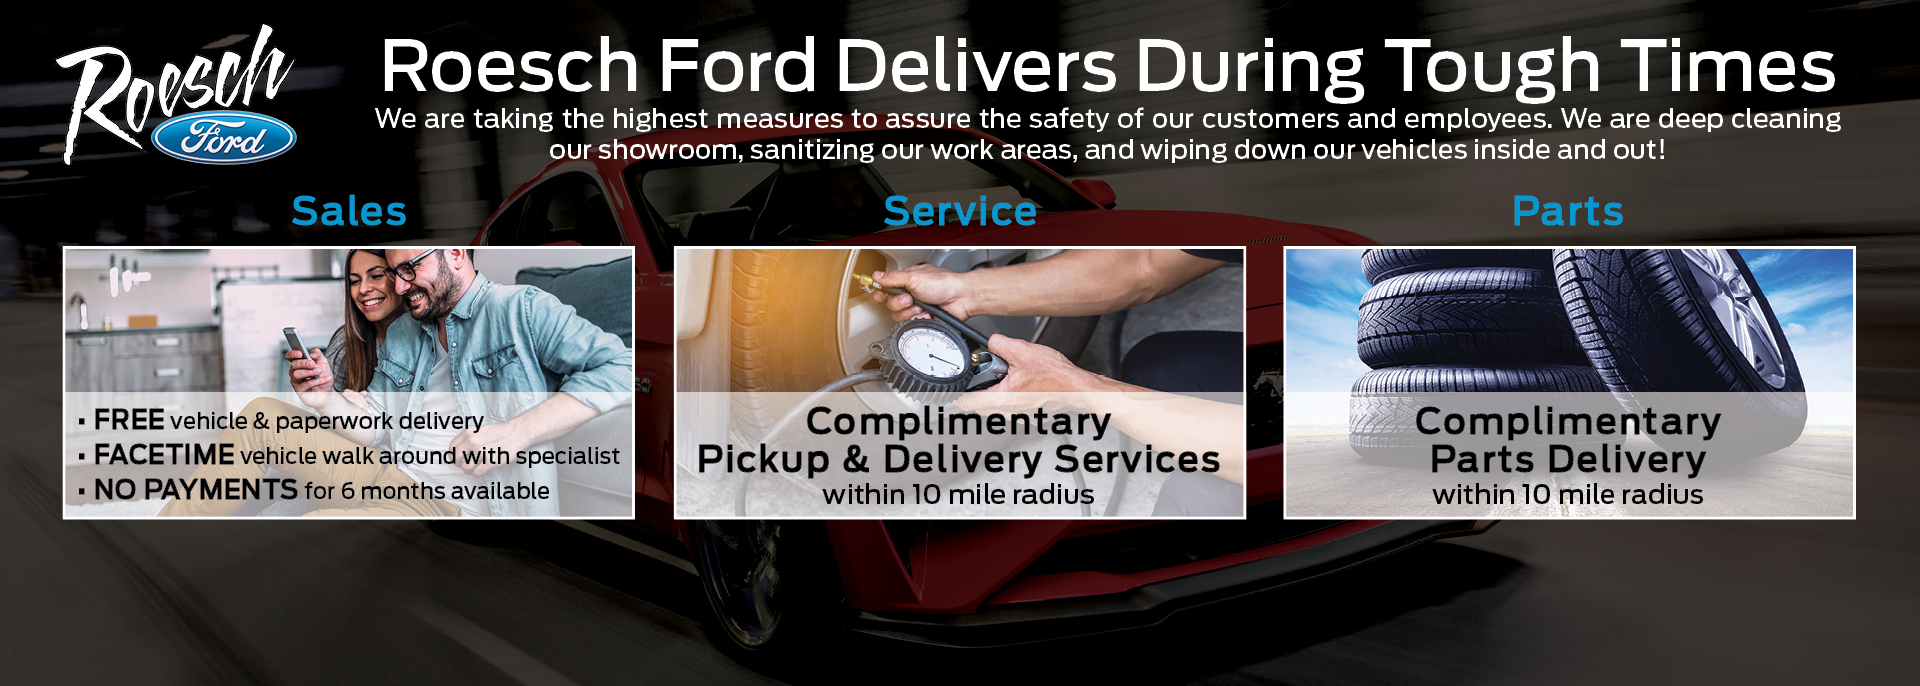 New Ford Cars, Trucks, and SUV Deliveries and Online Orders | Roesch Ford